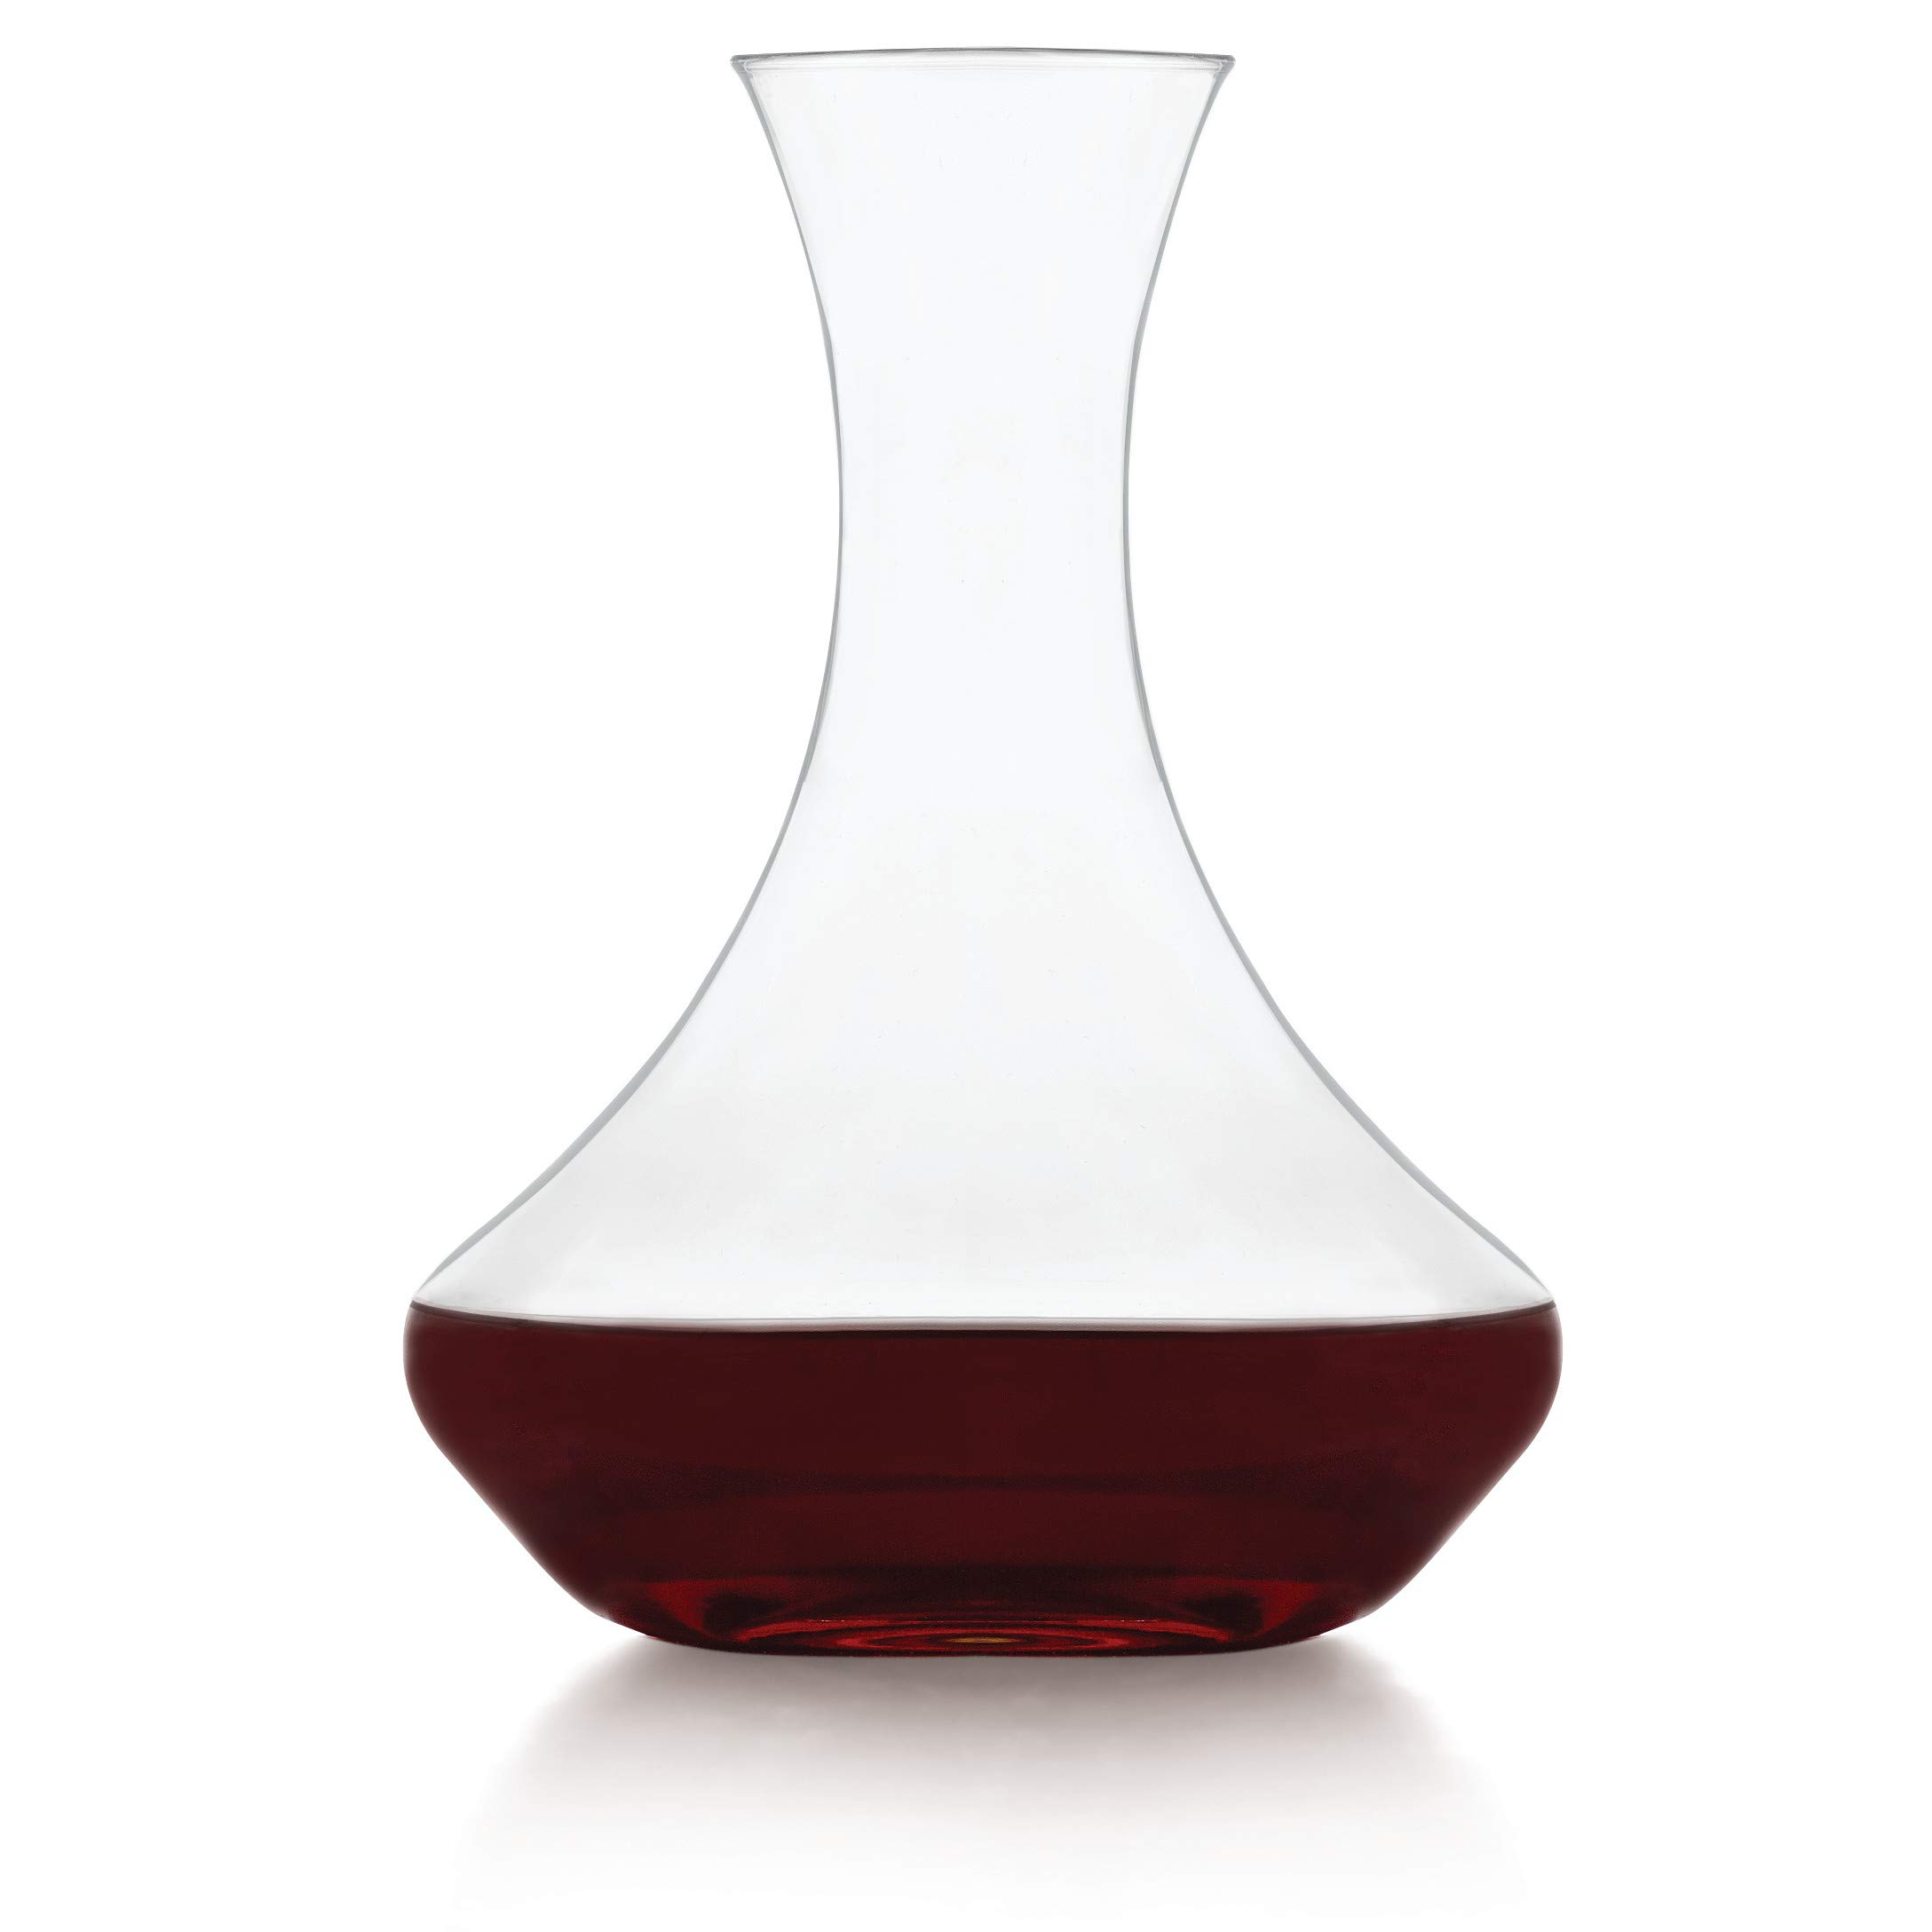 Libbey Vina 60-Ounce Contemporary Wine Decanter, Clear, 1-Piece